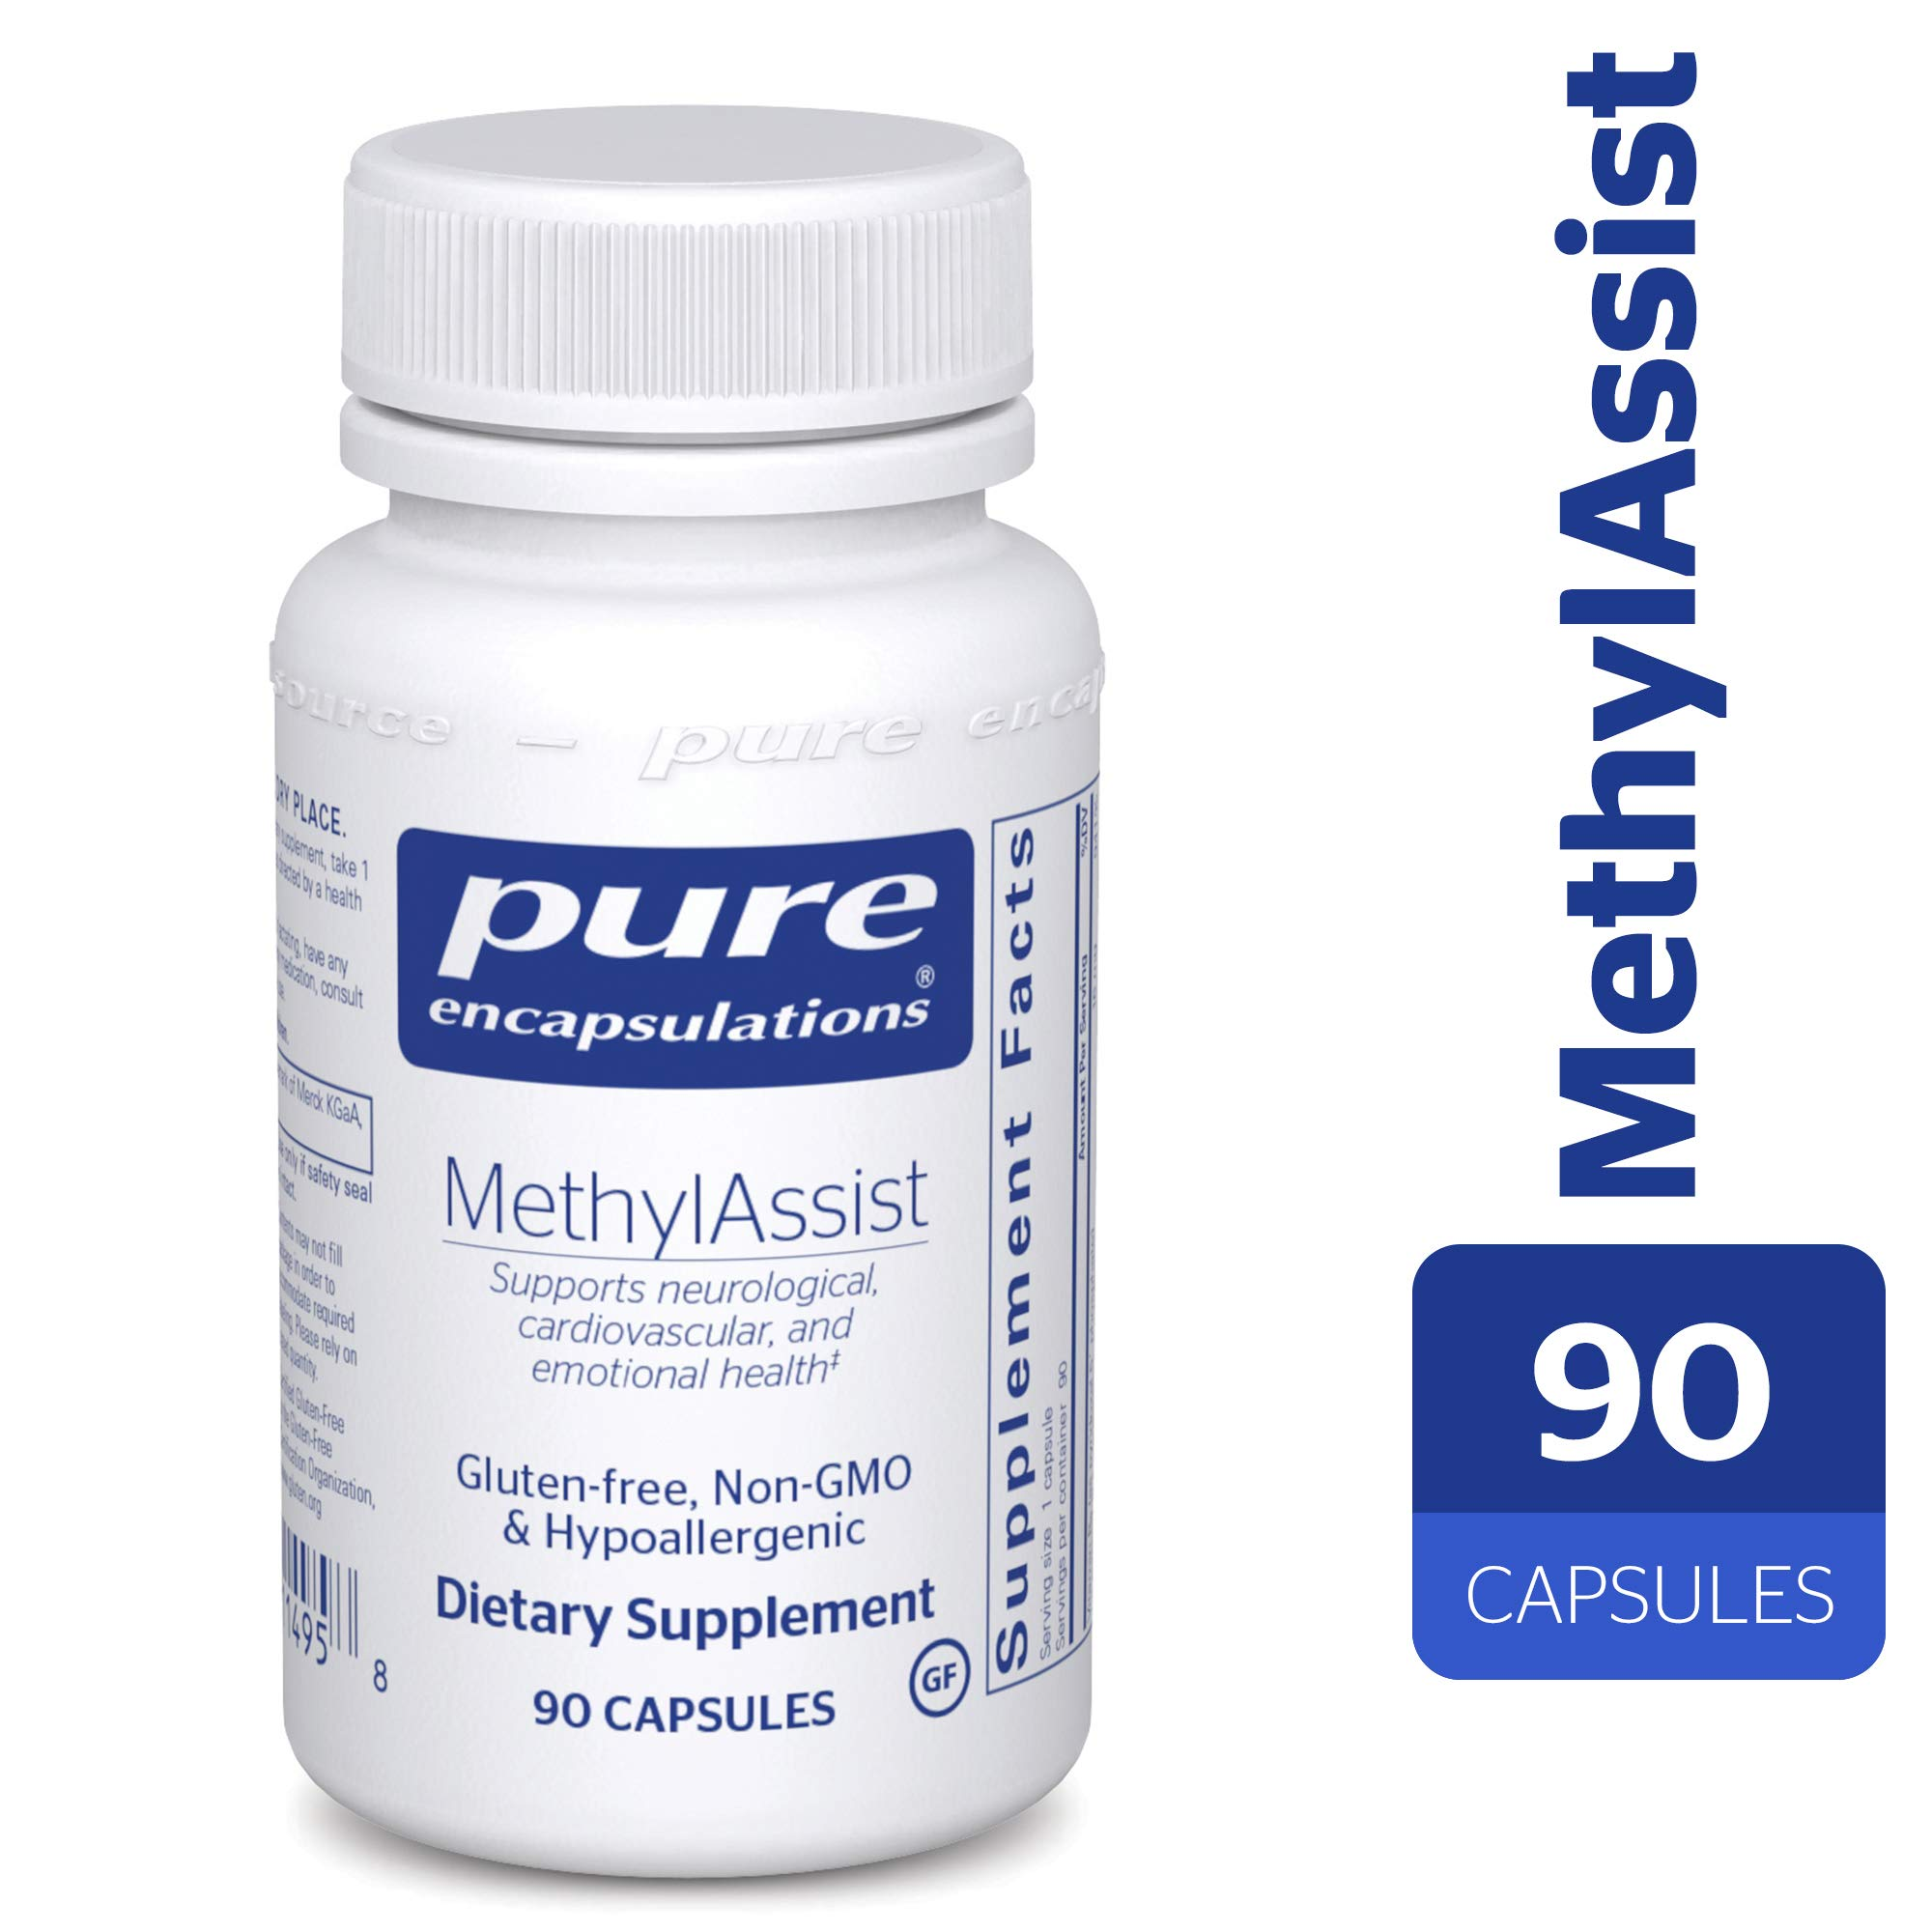 Pure Encapsulations - MethylAssist - Hypoallergenic Supplement with B Vitamins to Support Cardiovascular, Neural and Emotional Health* - 90 Capsules